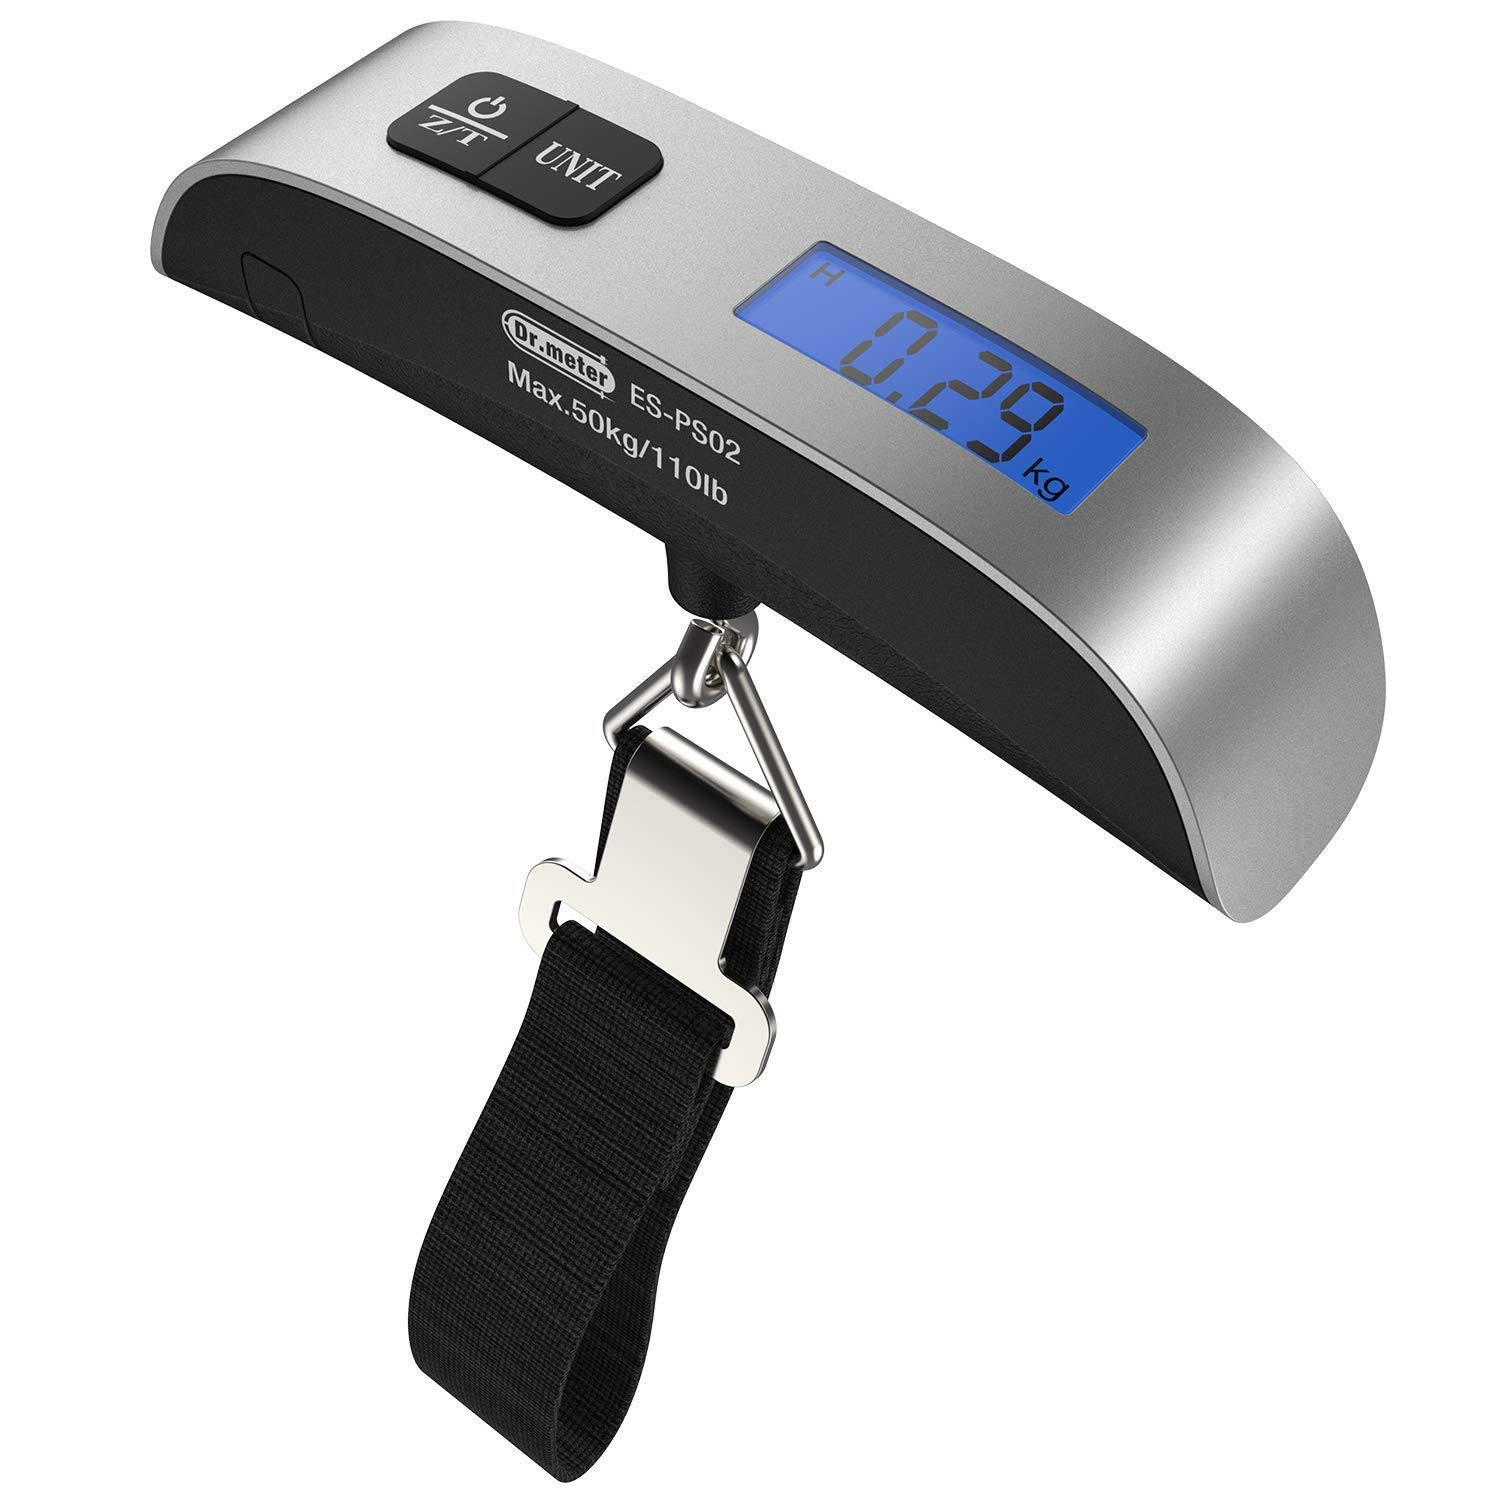 Digital Luggage Scale, Dr.meter 110lb/50kg Backlight LCD Display Electronic Balance Digital Postal Hanging Luggage Weight Scale with Rubber Paint Handle,Temperature Sensor, Silver/Black product image